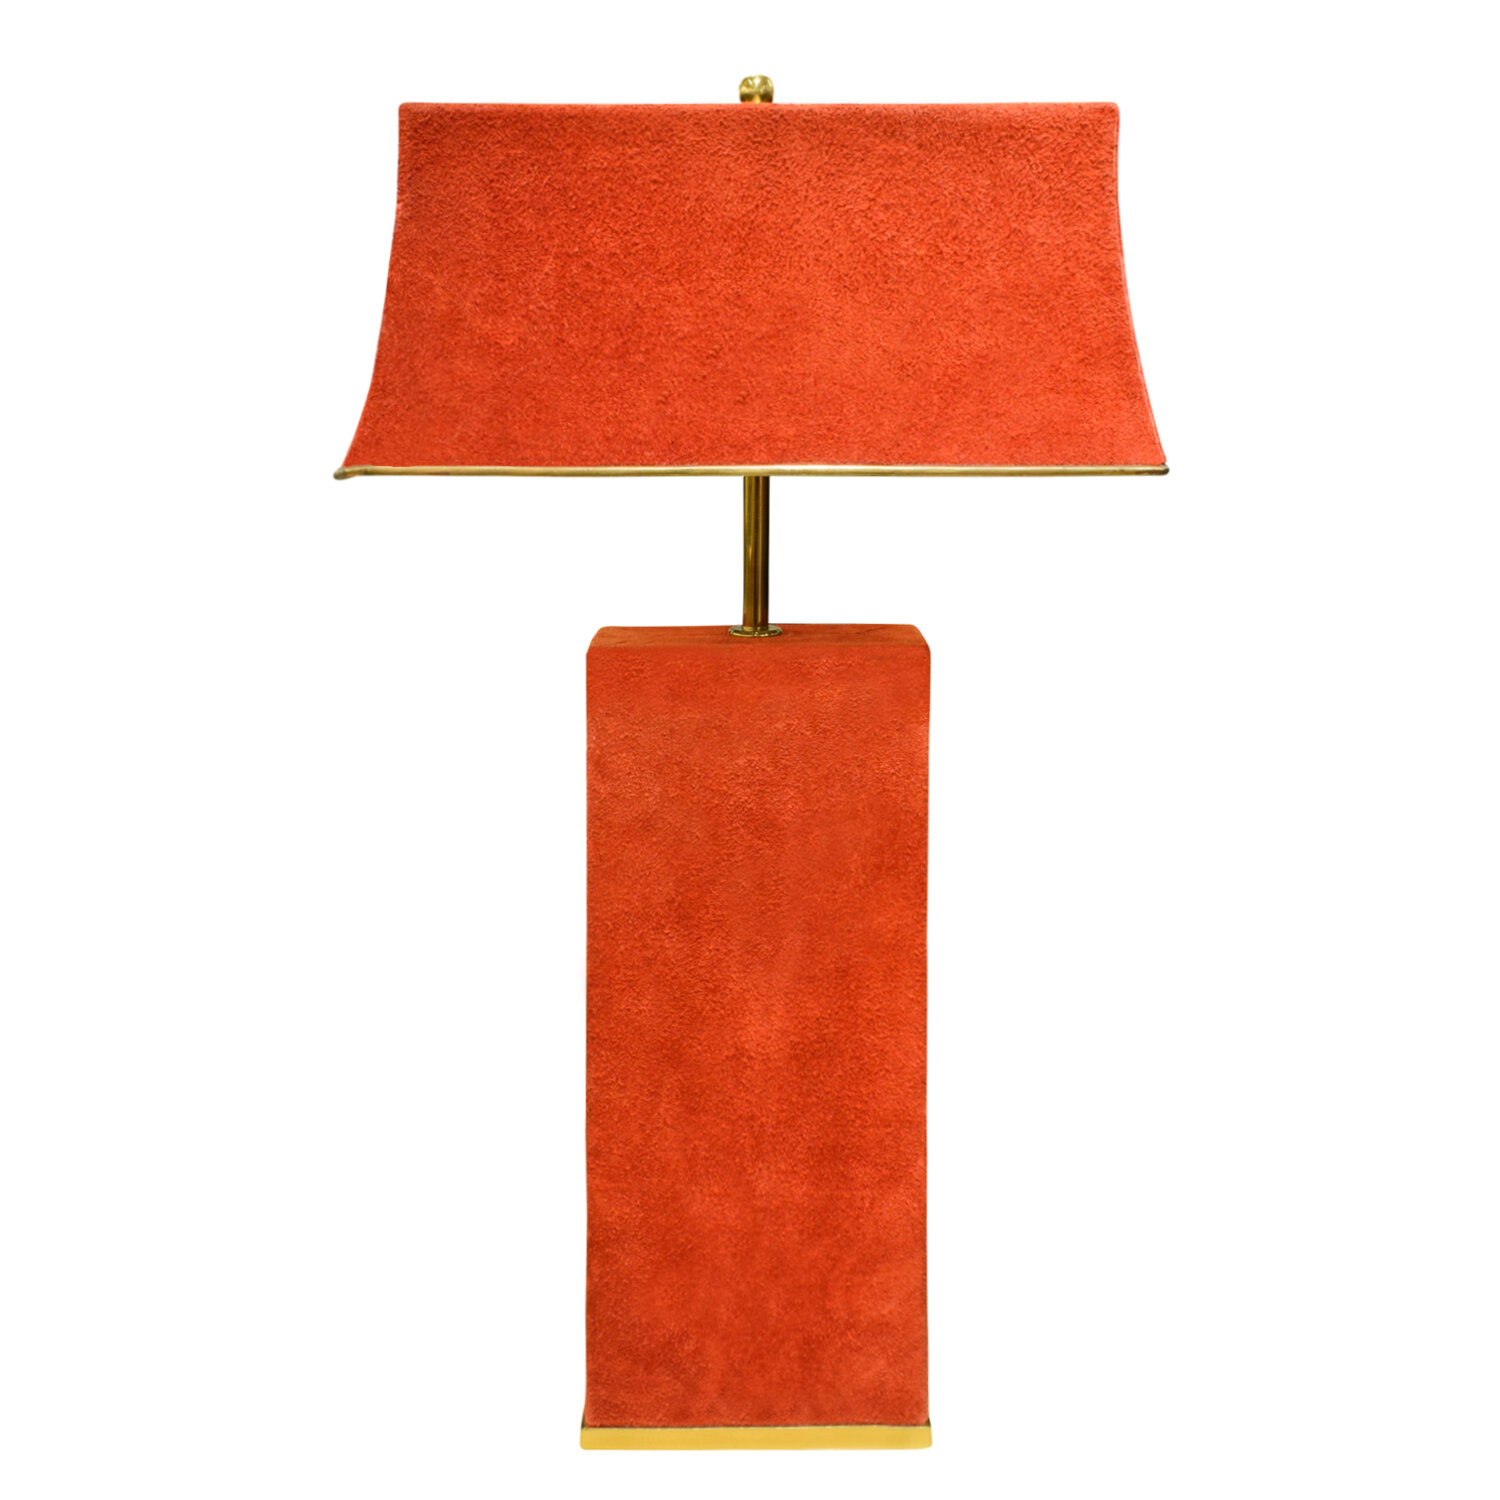 Springer 65 red suede over brass tablelamp290 main2.jpg